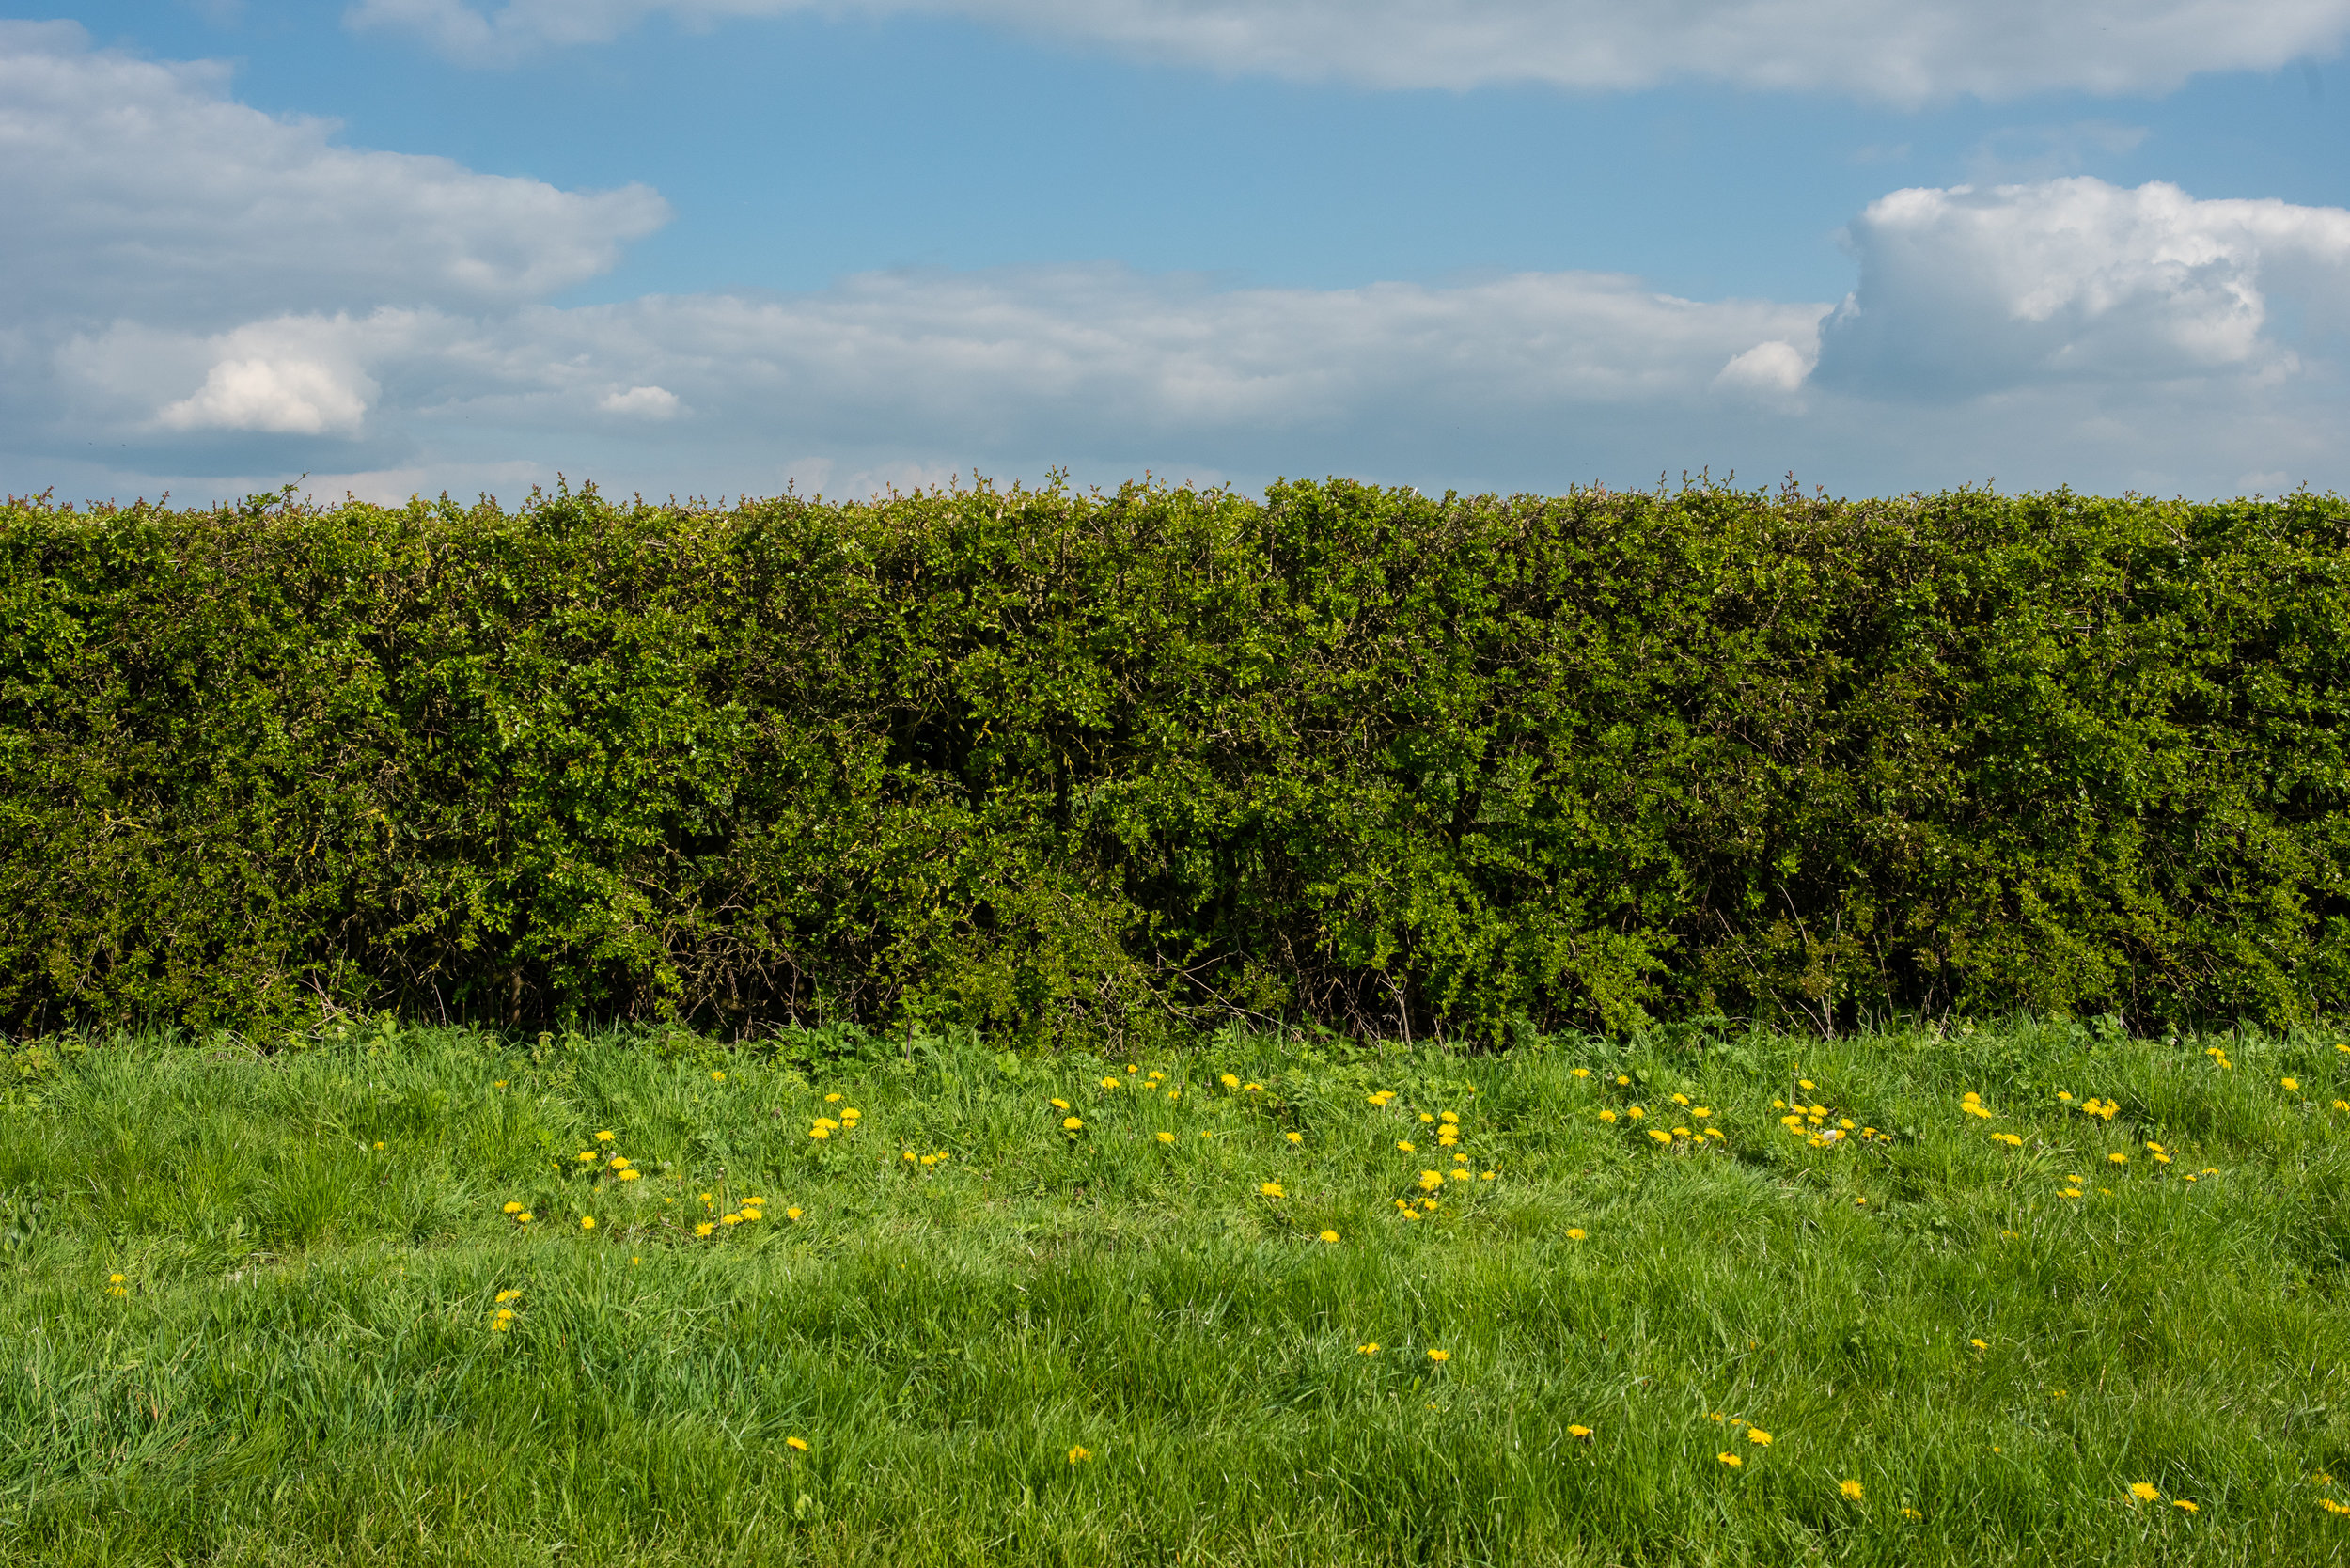 The Hedgerow - A series documenting hedges, their purpose and their destruction